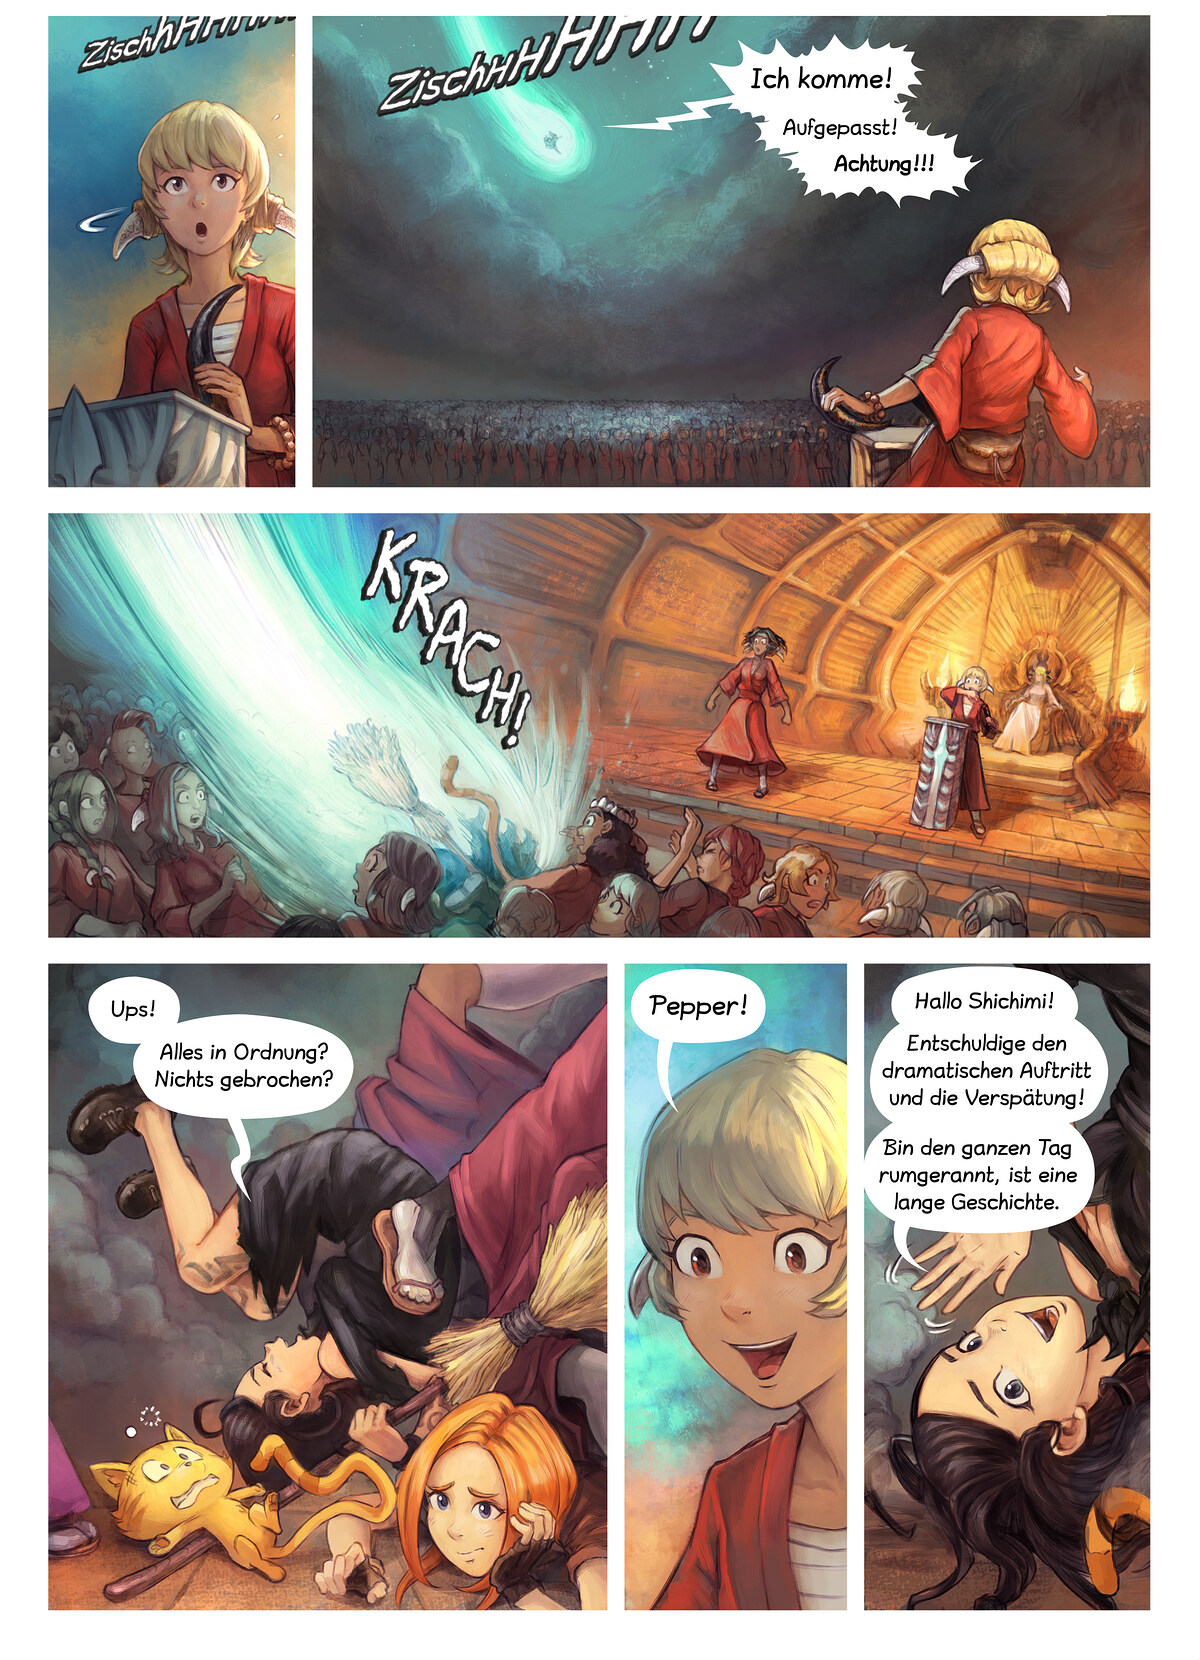 Episode 34: Shichimis Abschluss, Page 2